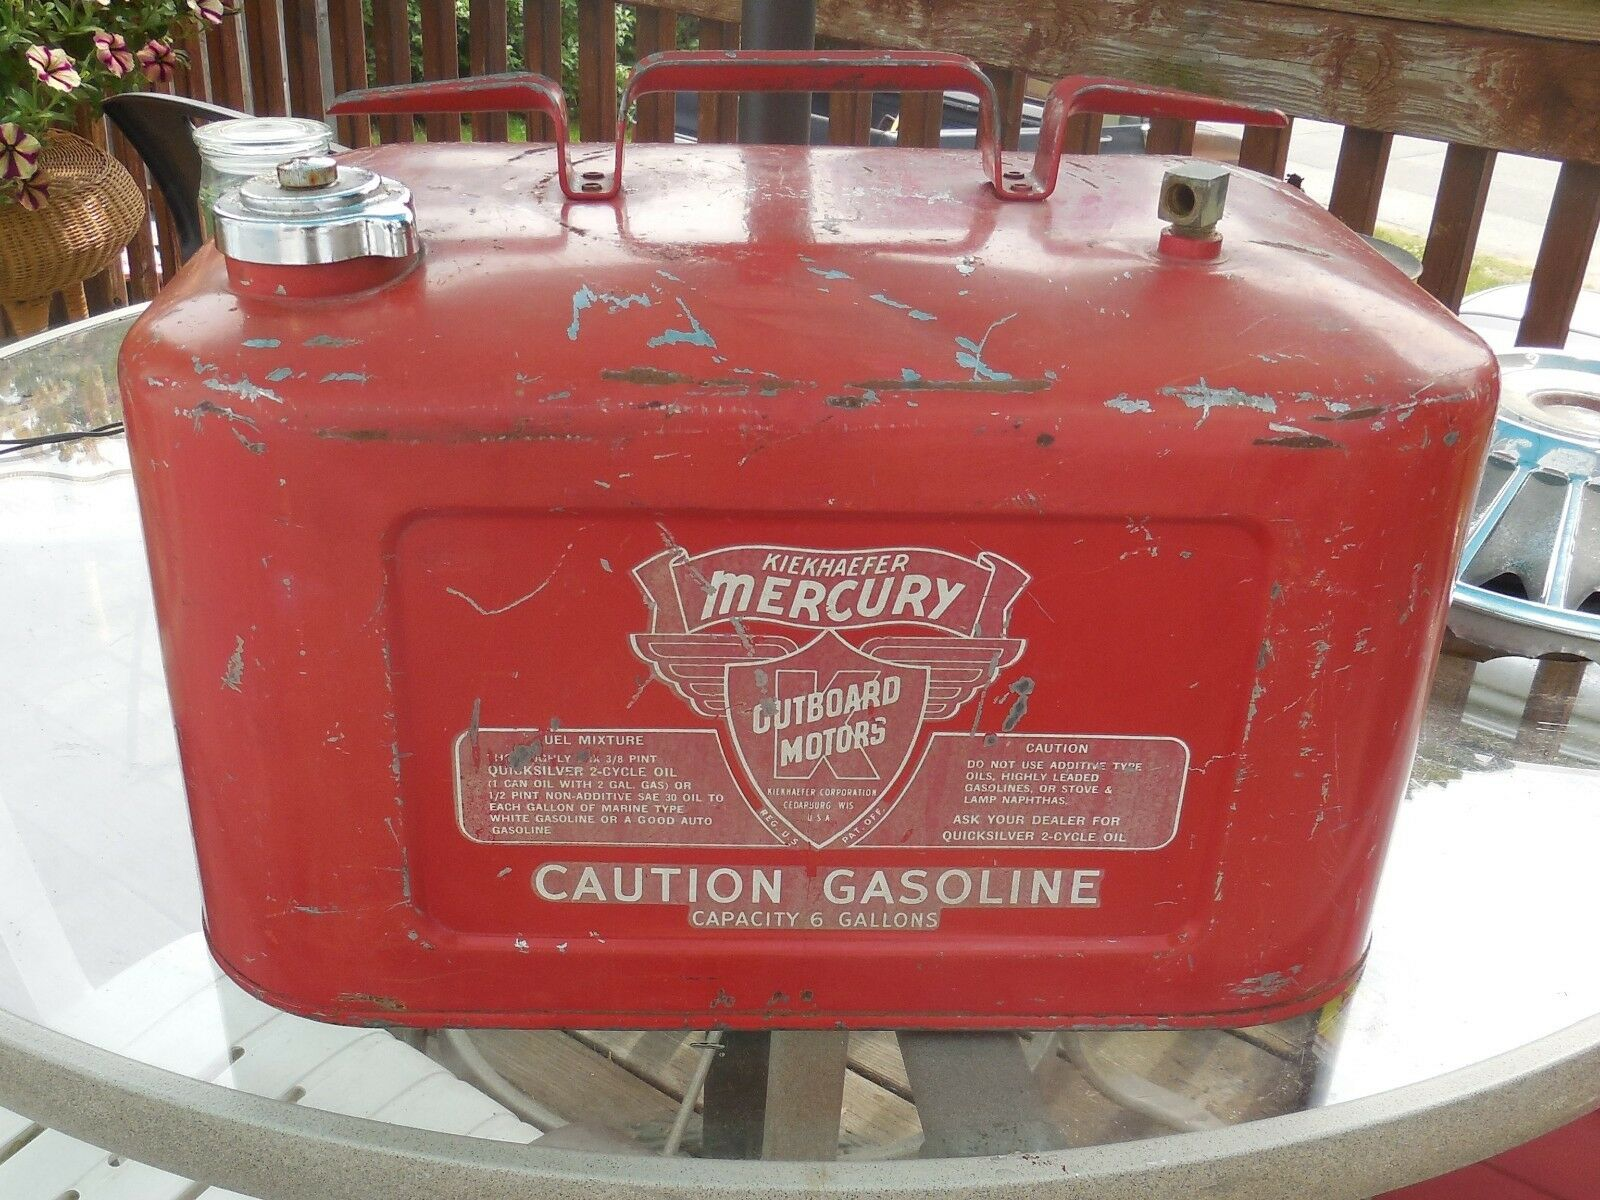 6 Gallon Kiekhaefer Mercury Gasoline Gas Fuel Tank Outboard Boat Motor  Johnson n 1 of 7Only 1 available ...